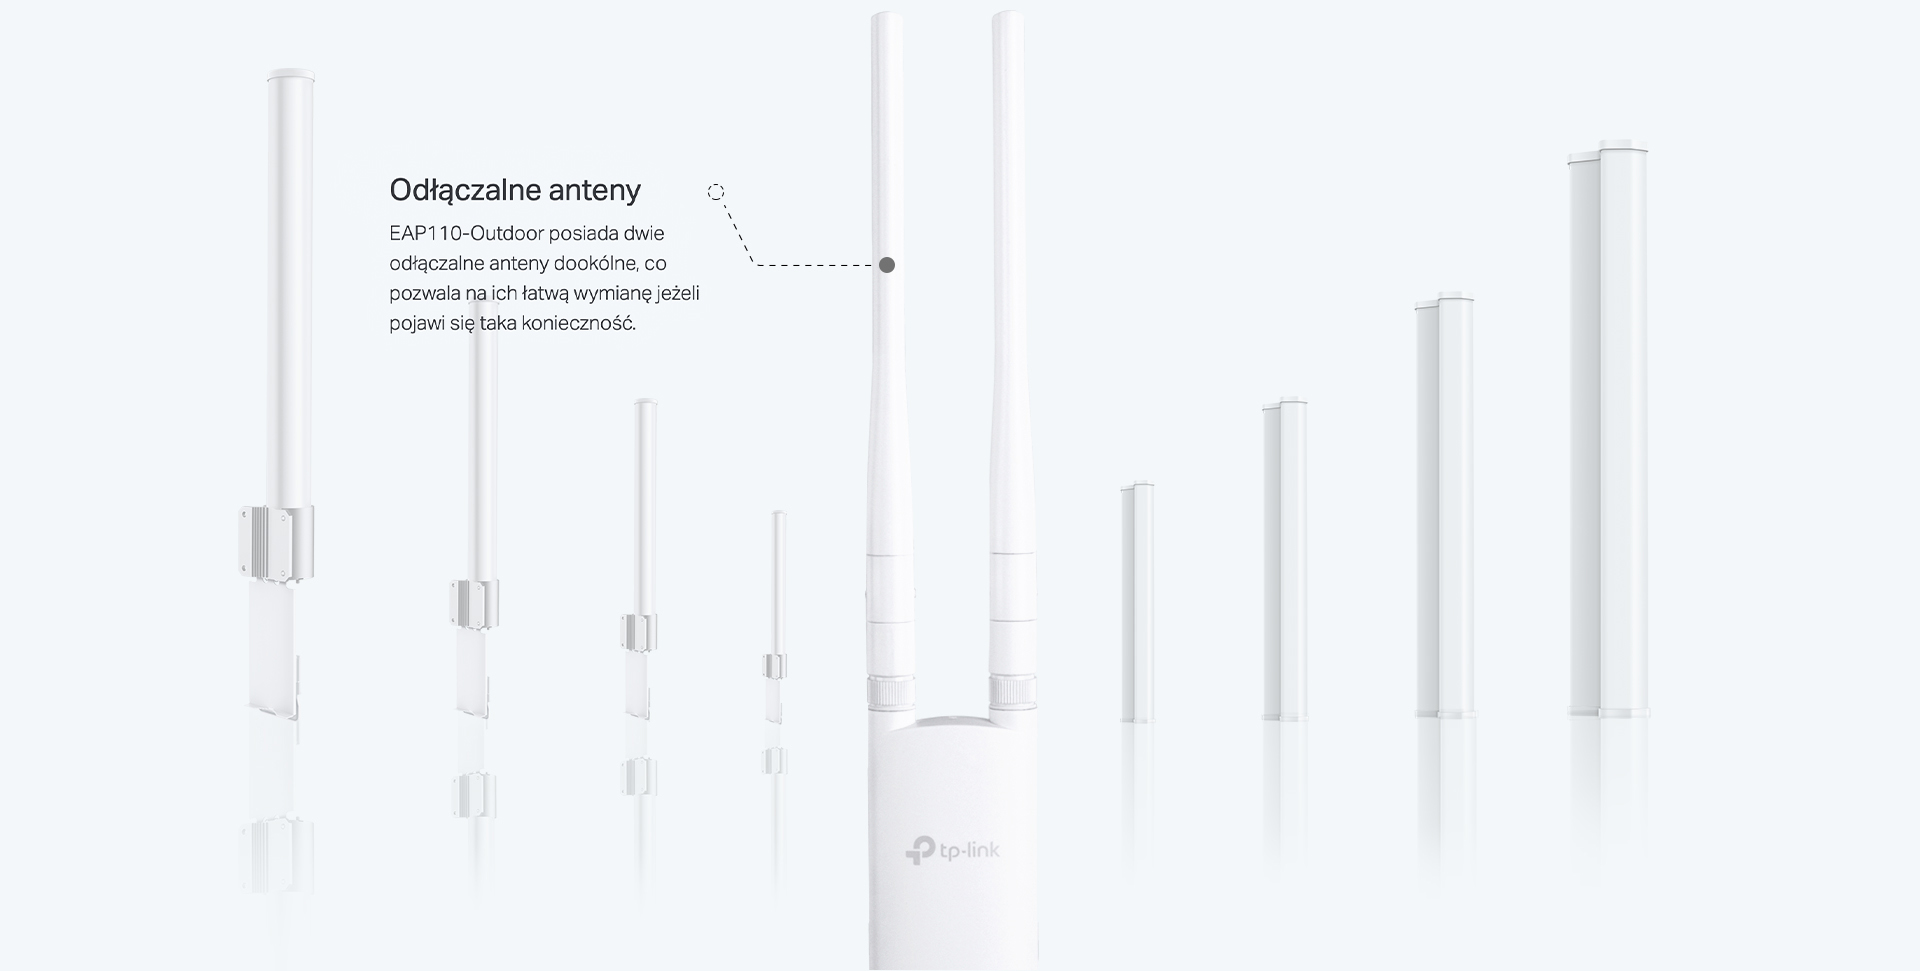 #TP-Link EAP110-Outdoor Wireless 802.11n/300Mbps AccessPoint Outdoor